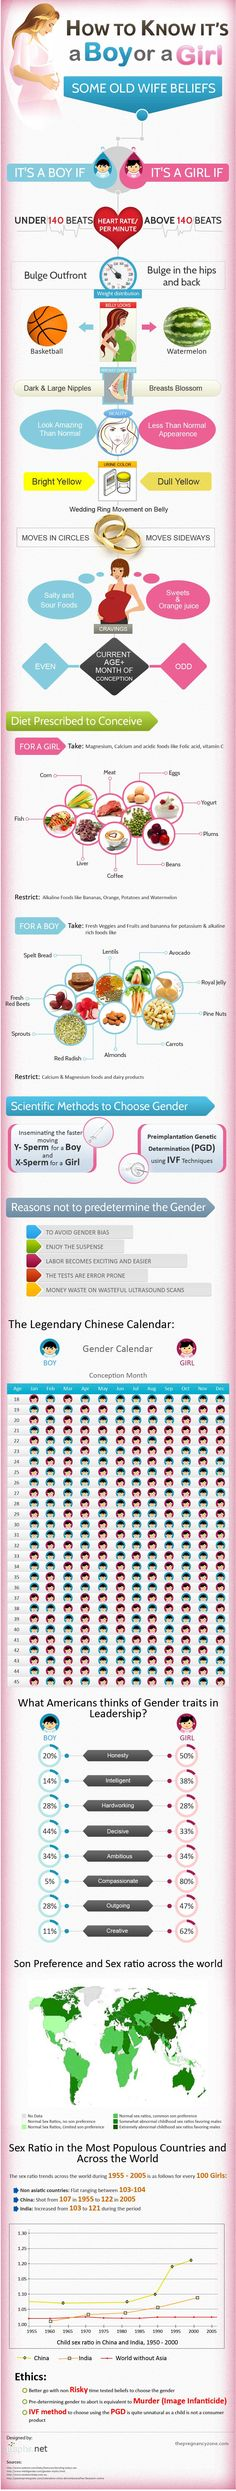 Follow this infographics to know whether you will conceive a boy or a girl. Few old wife tales are clearly mentioned in the infographic along with a Ch